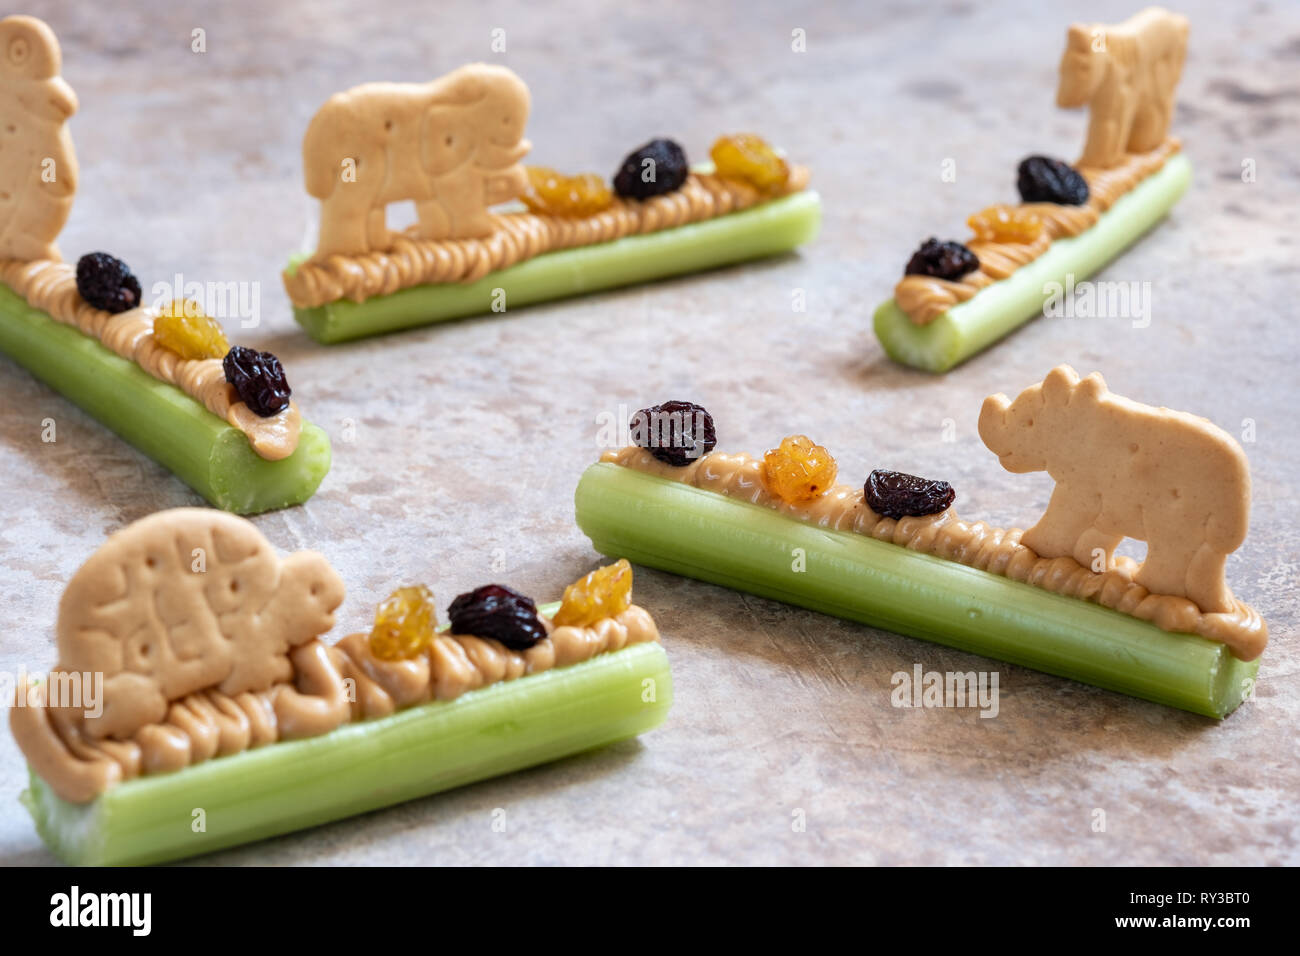 Ants On A Log Snack With Celery Peanut Butter Raisins And Cookie Stock Photo Alamy